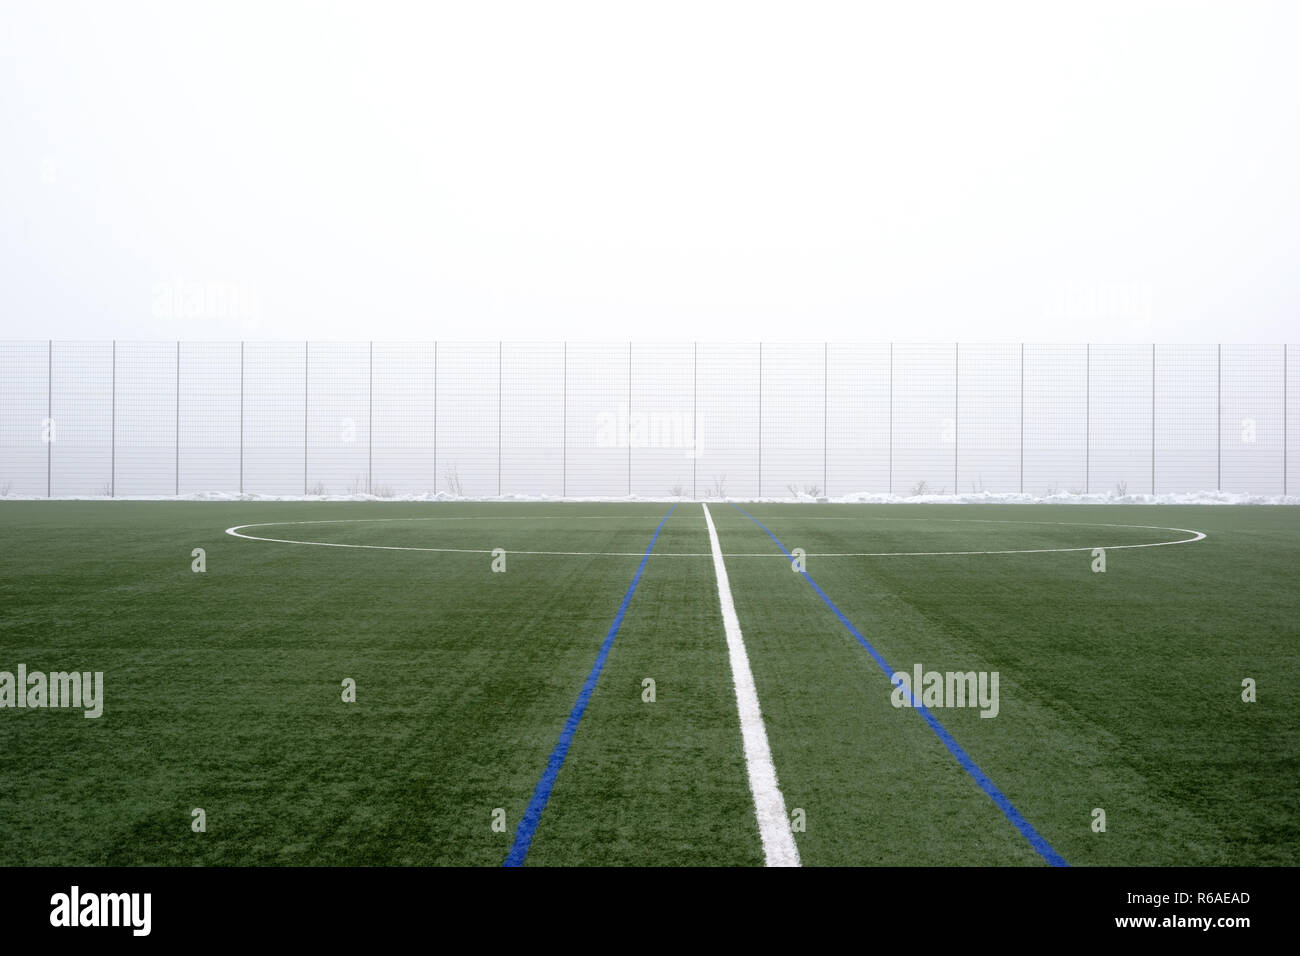 Football Field In The Fog - Stock Image